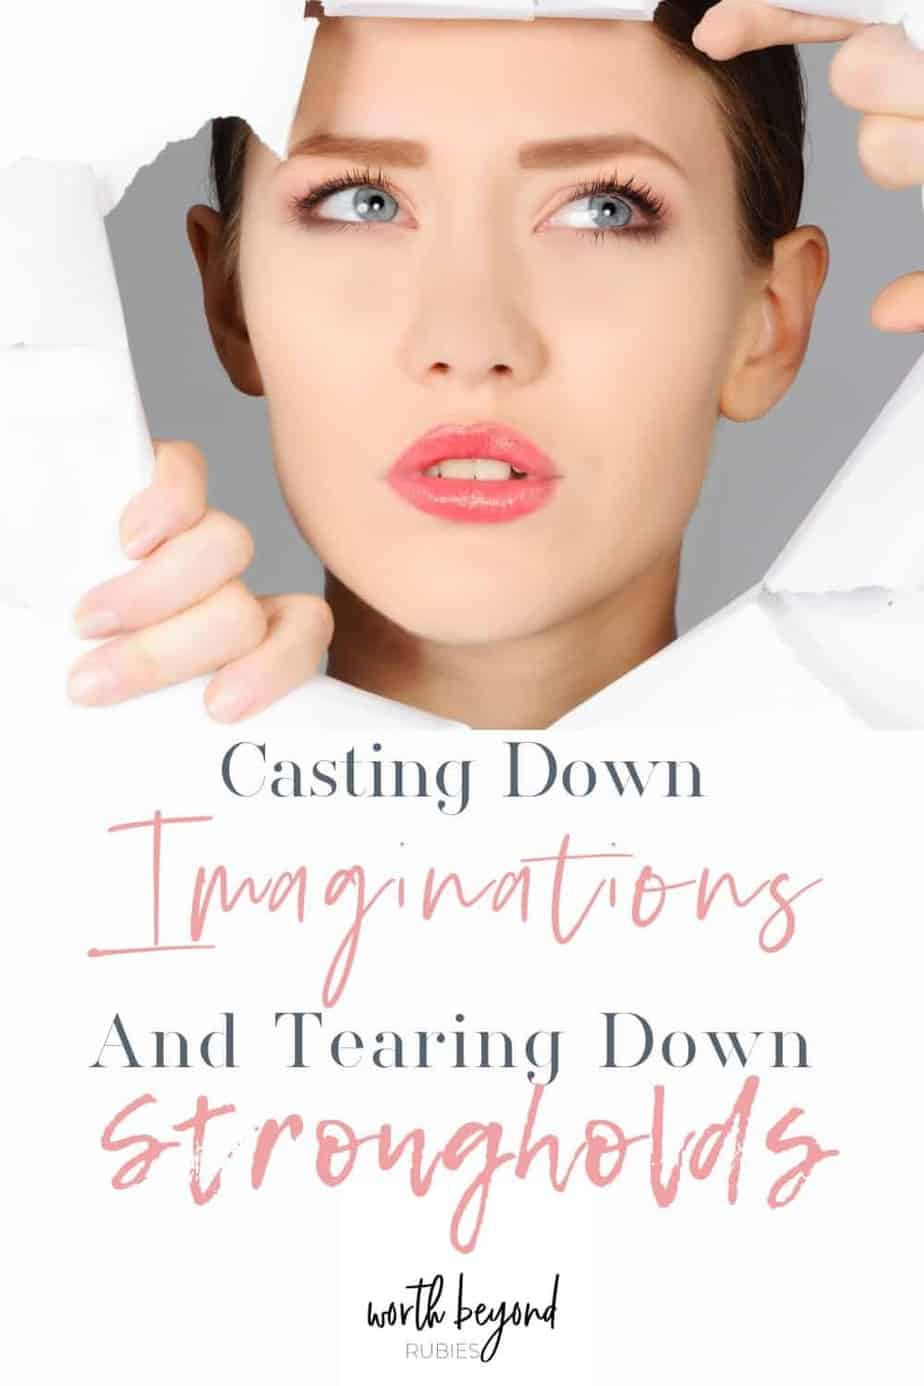 An image of a woman's face and hands poking through a hole in white paper and text that says Casting Down Imaginations and Tearing Down Strongholds